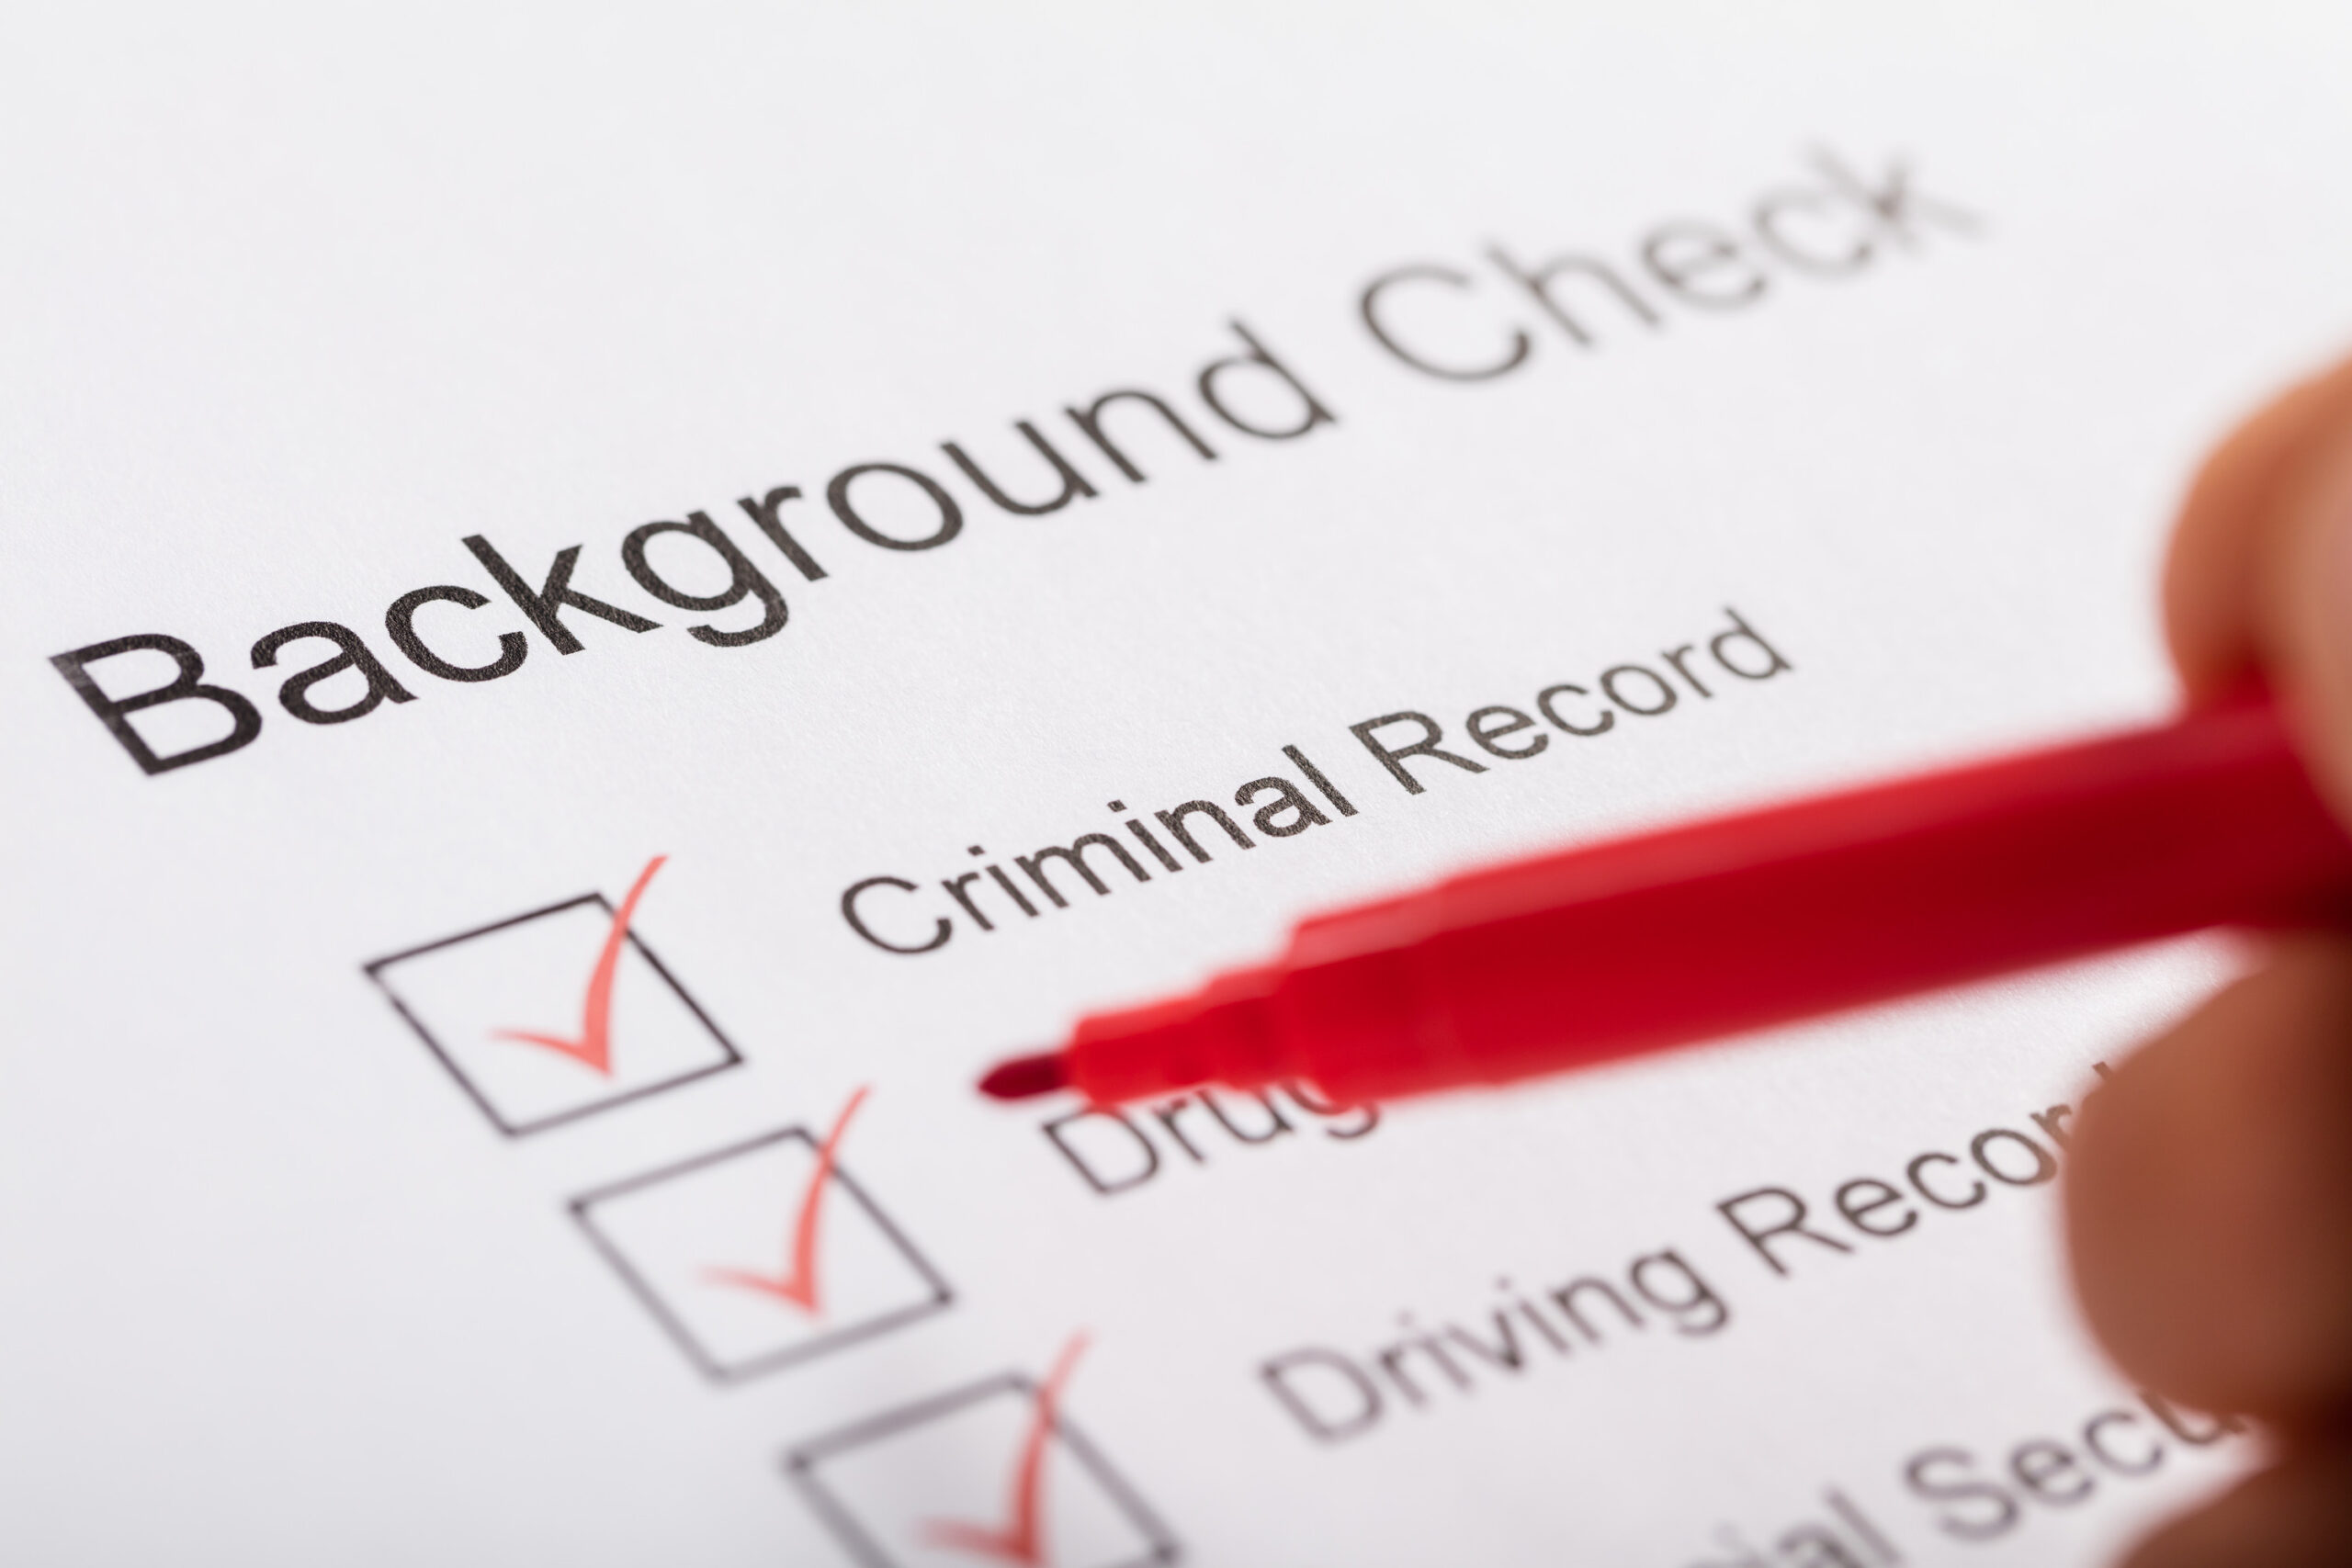 Find out what a background check entails and how to prepare for it!